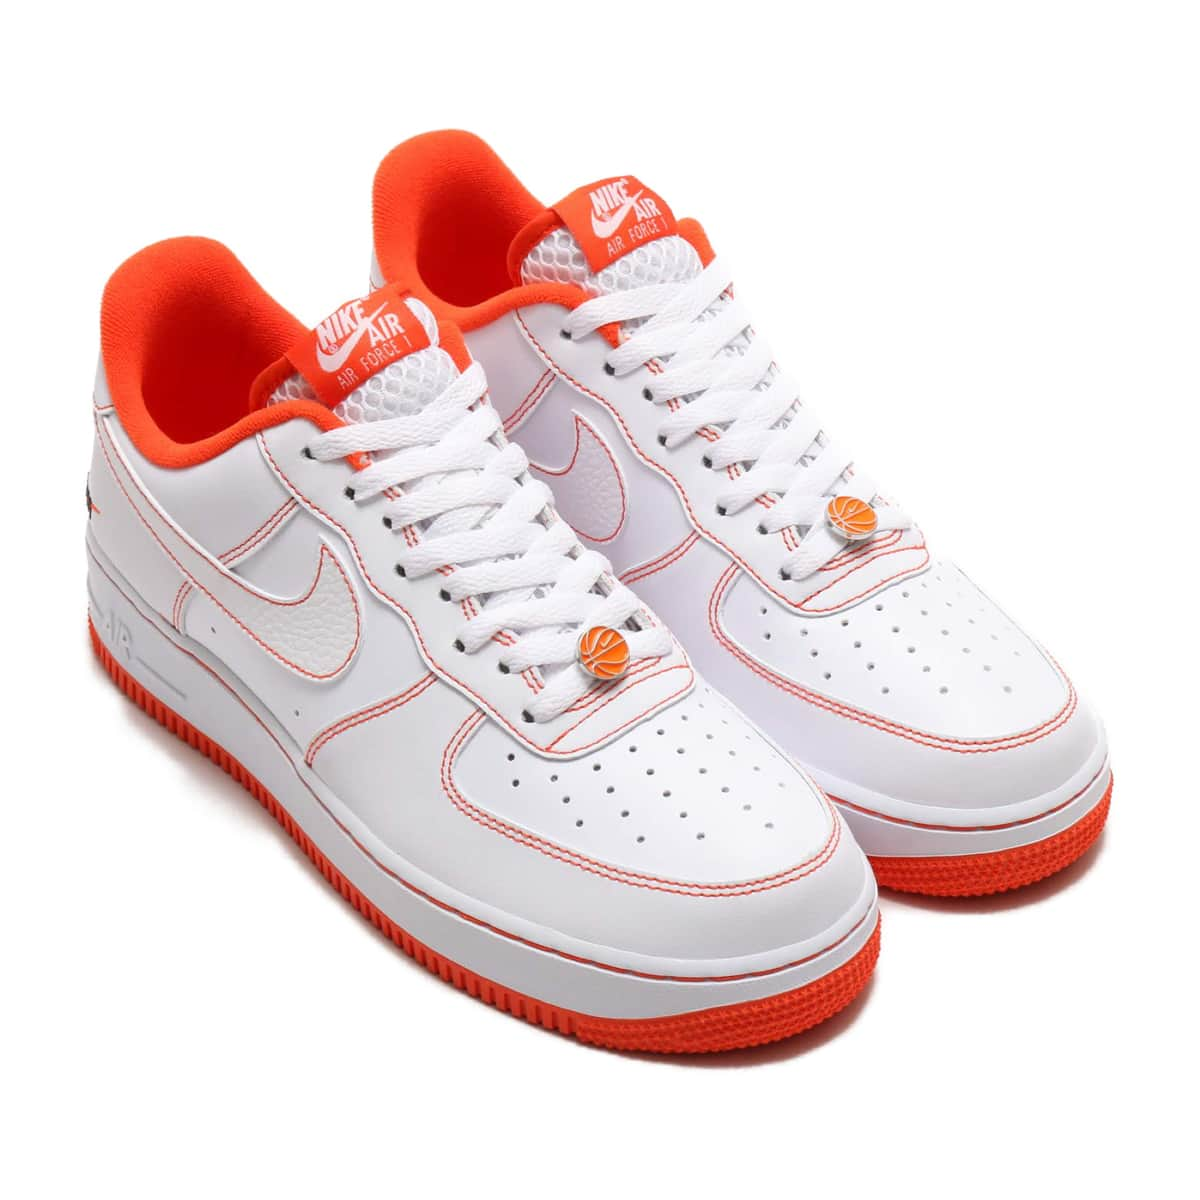 NIKE AIR FORCE 1 '07 LV8 EMB WHITE/TEAM ORANGE-BLACK 20SU-S_photo_large